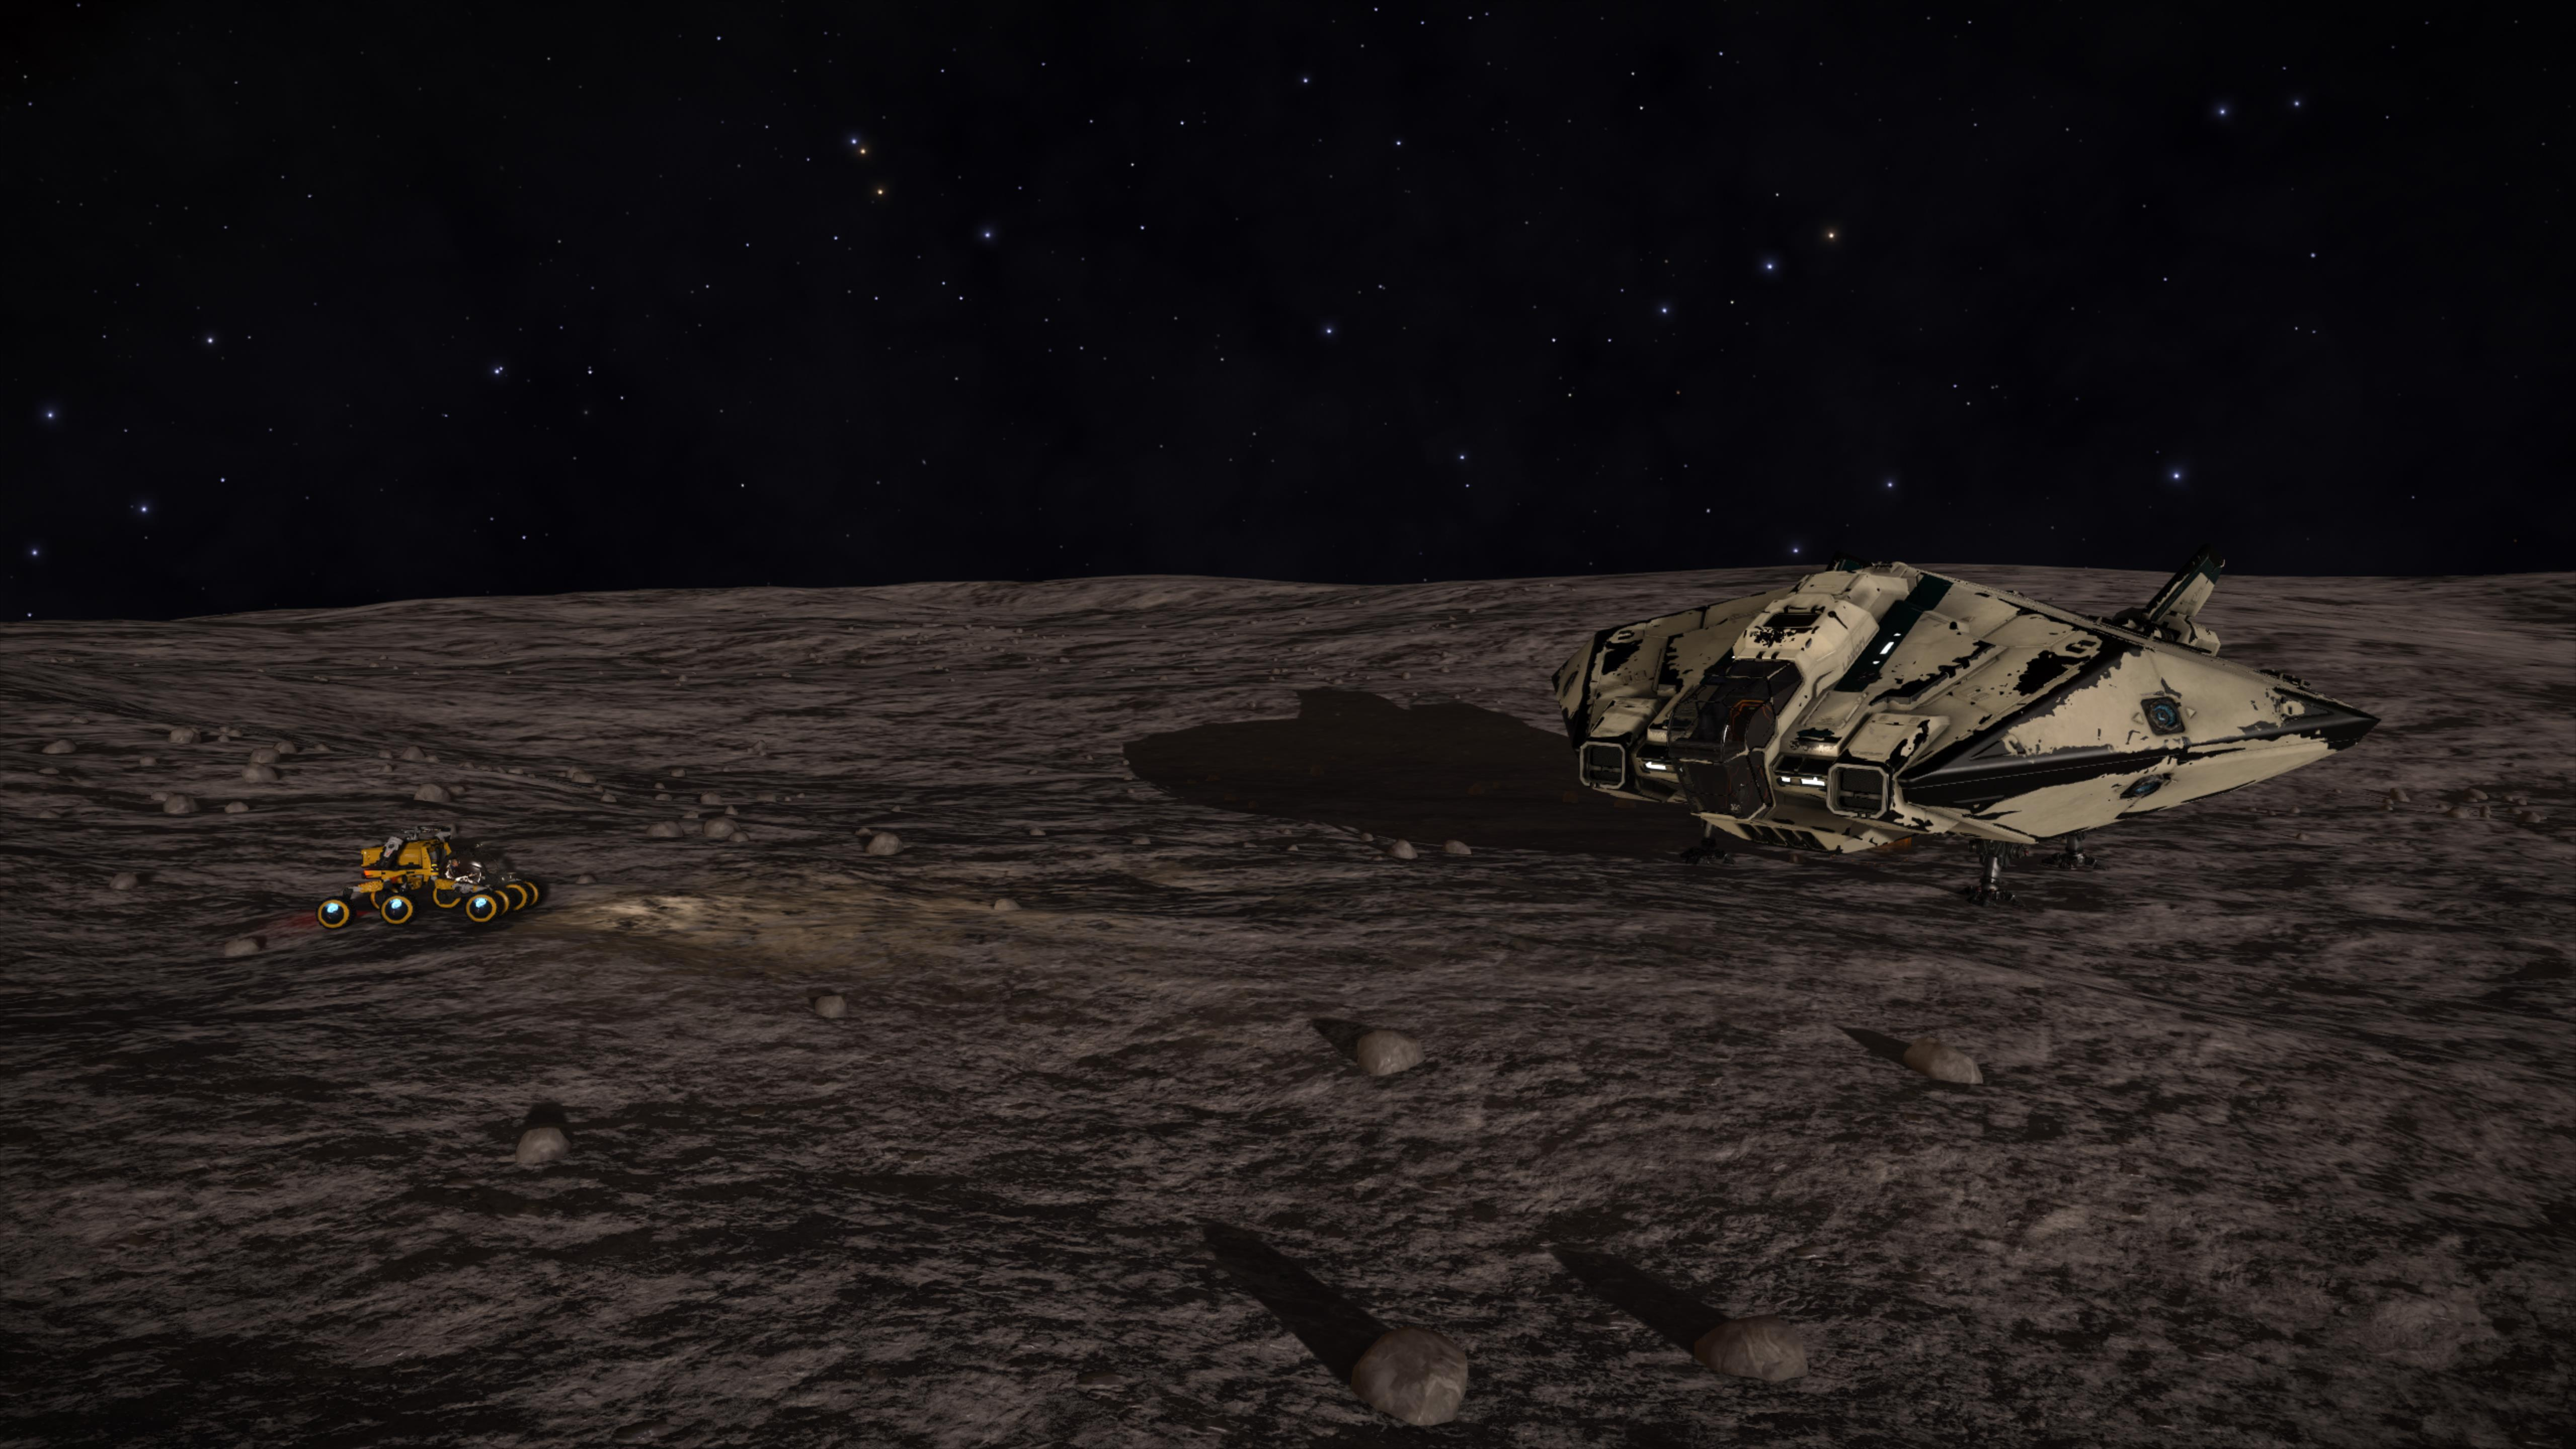 CMDR Head_Case in his SRV on planet A1 at Waypoint 10